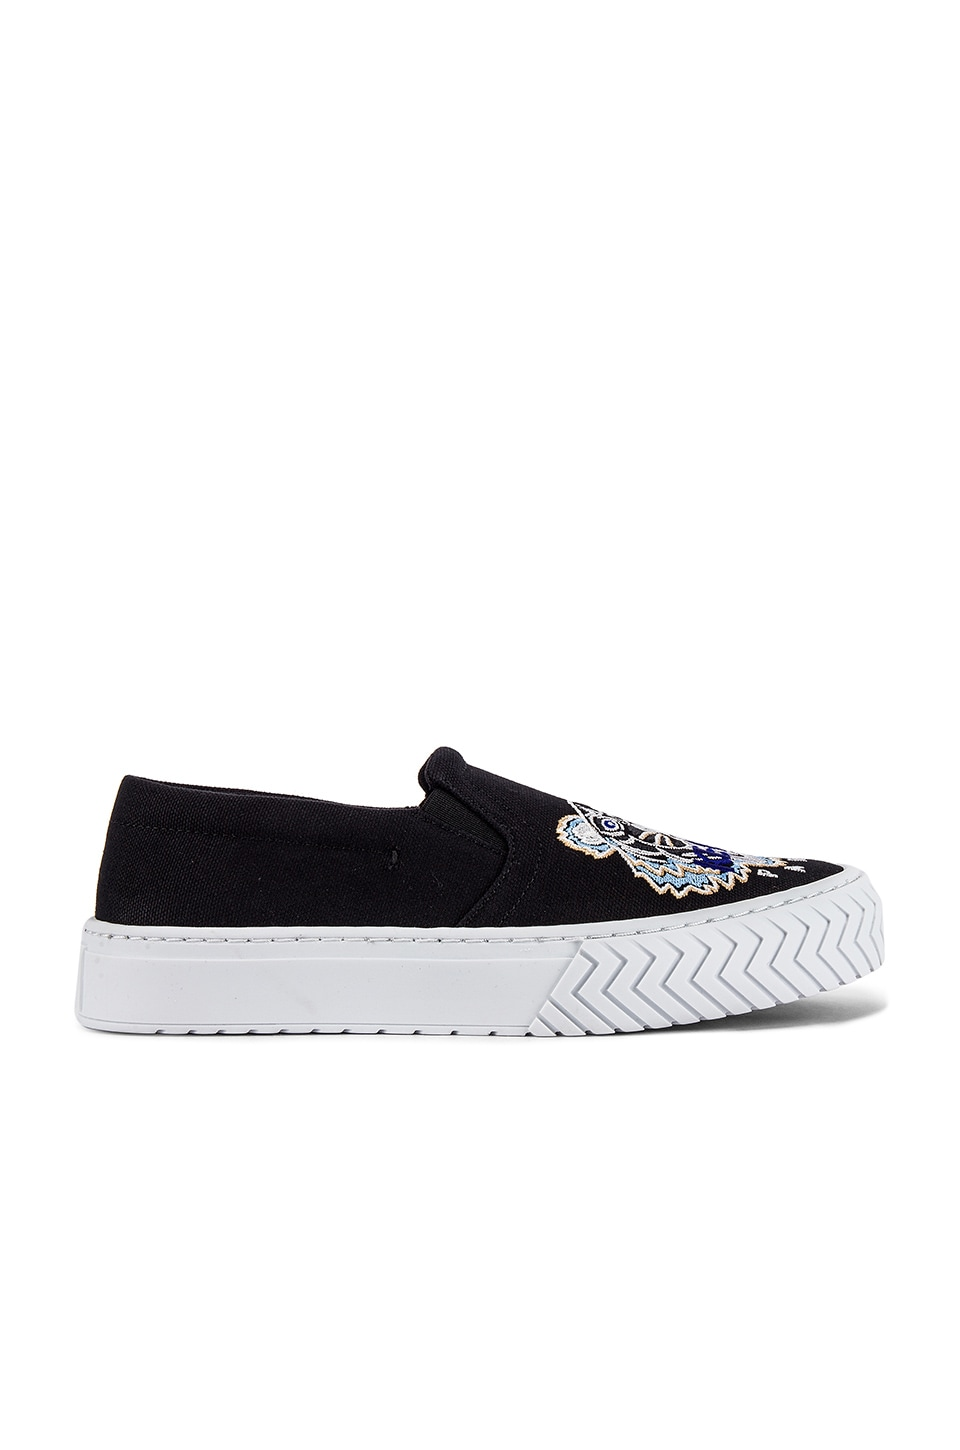 Kenzo Canvas Tiger Head Embroidery Slip On in Black